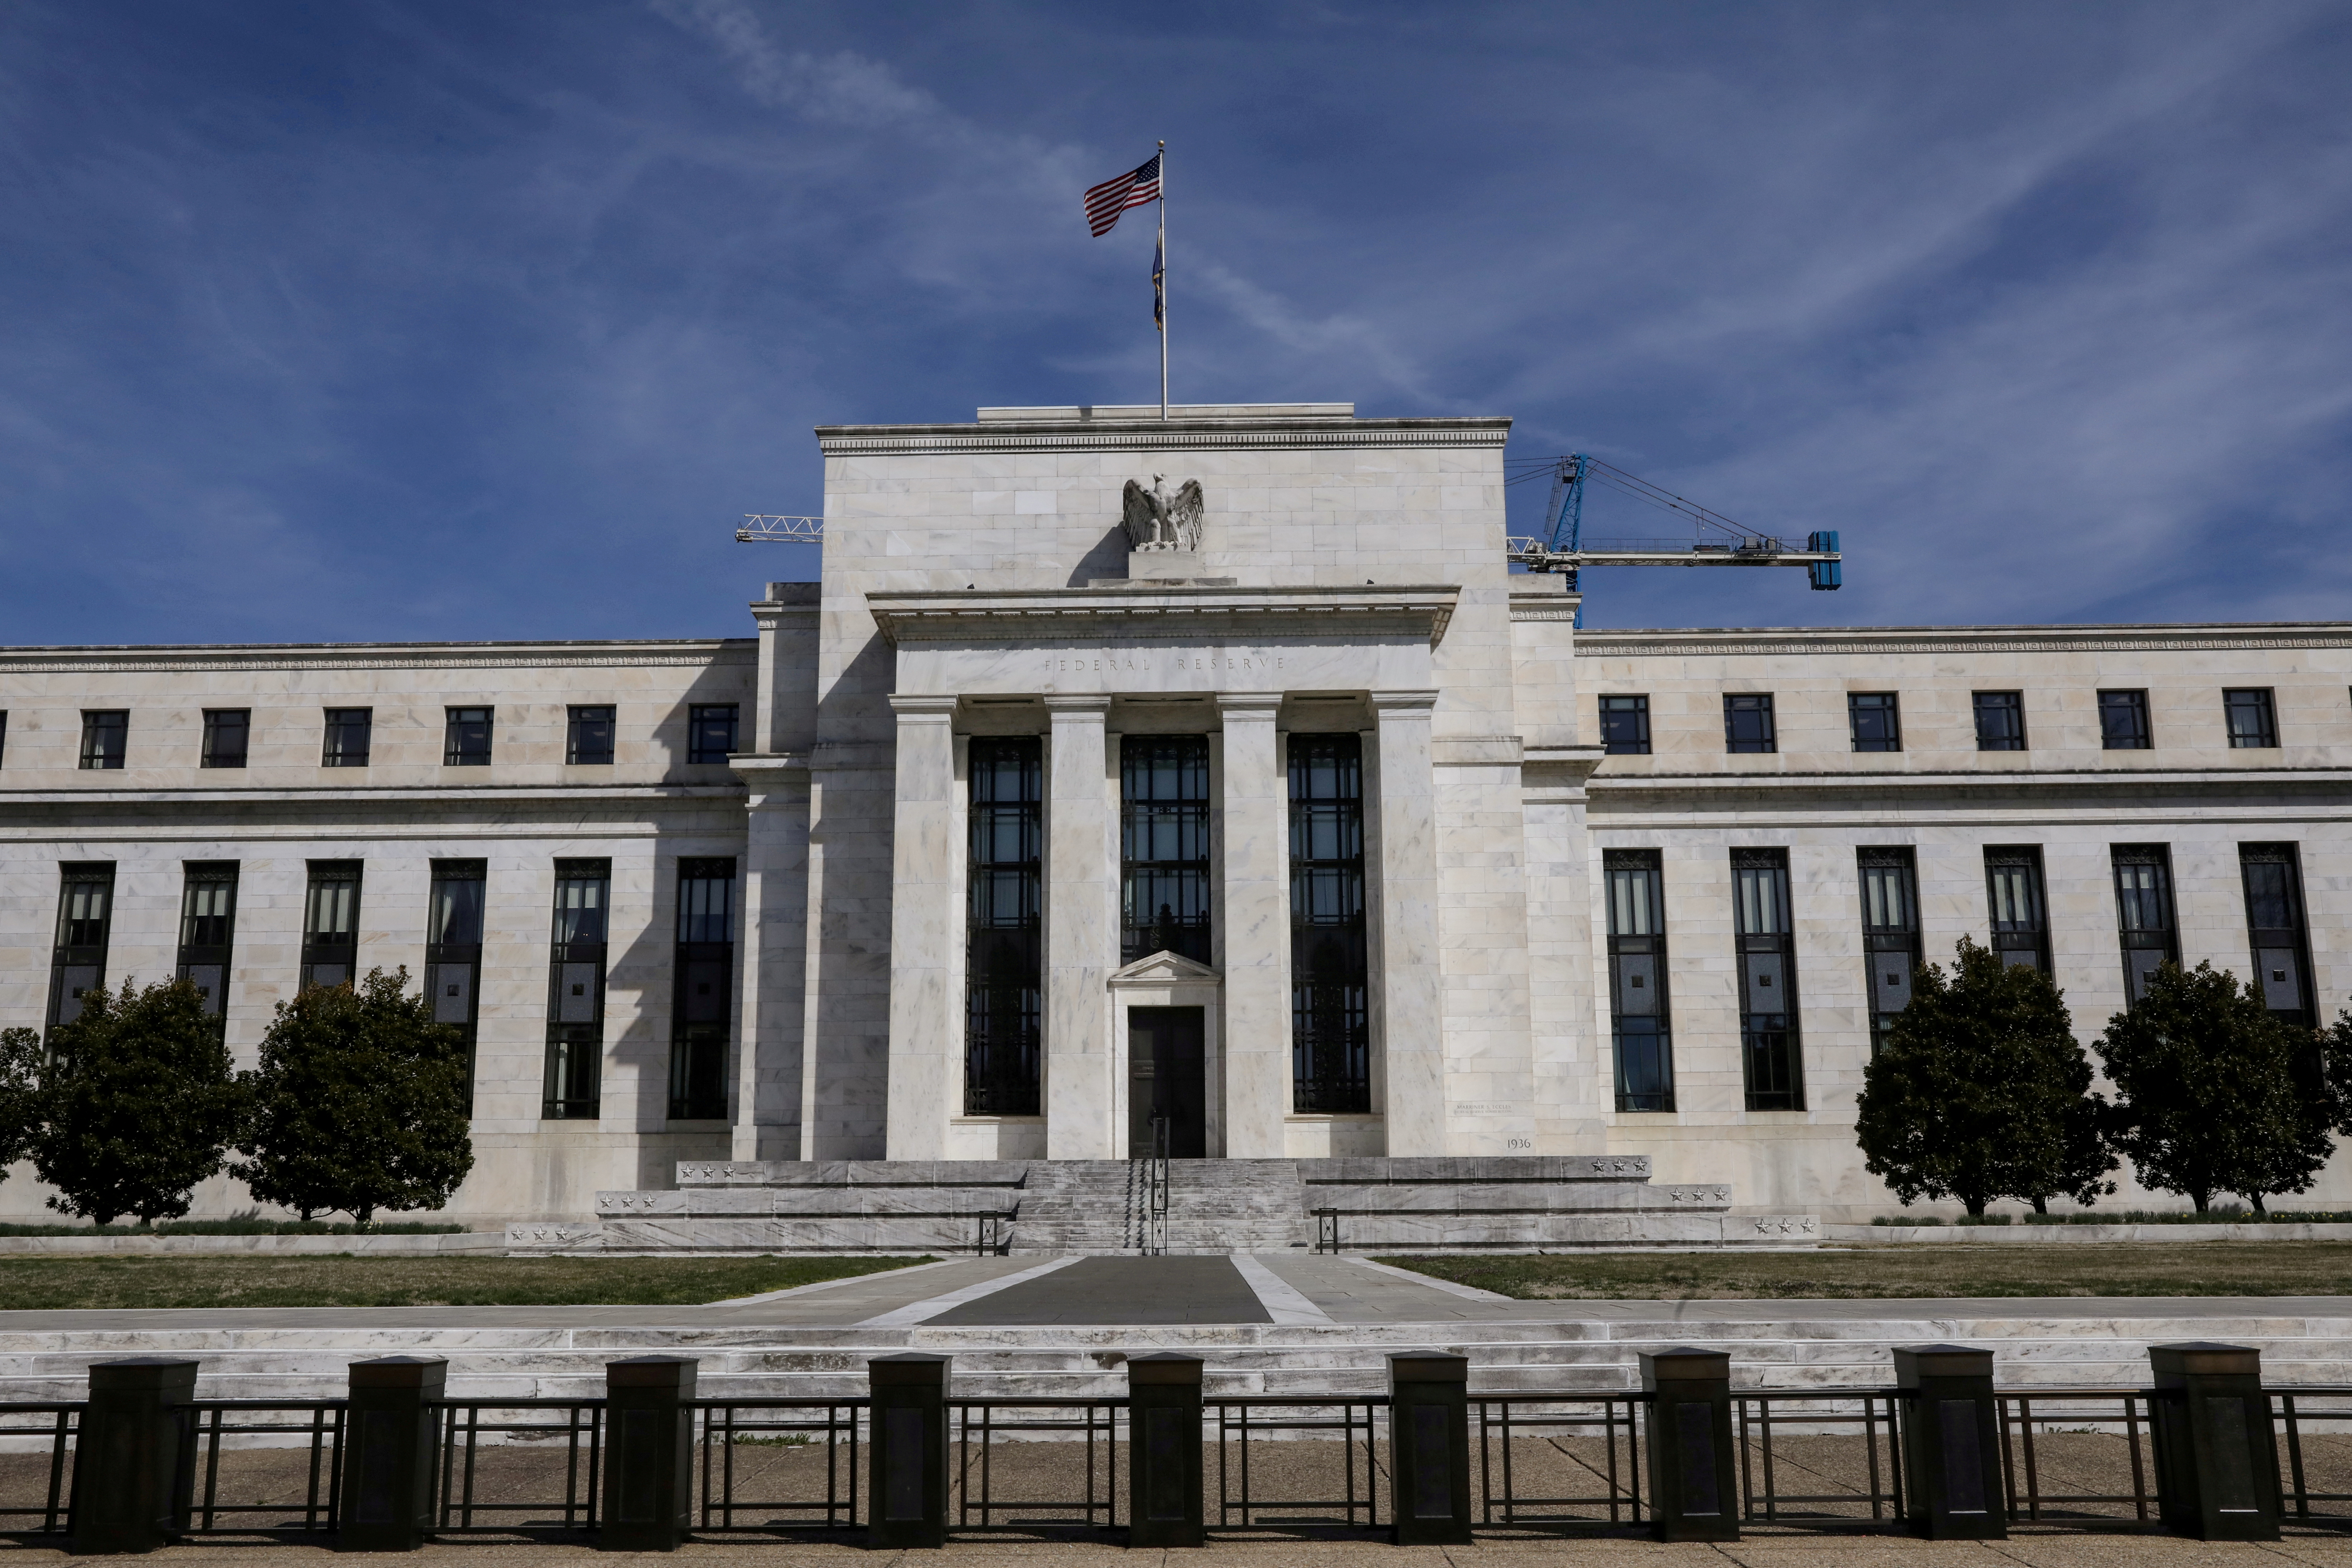 The Federal Reserve Board building on Constitution Avenue is pictured in Washington, U.S., March 27, 2019. REUTERS/Brendan McDermid/File Photo